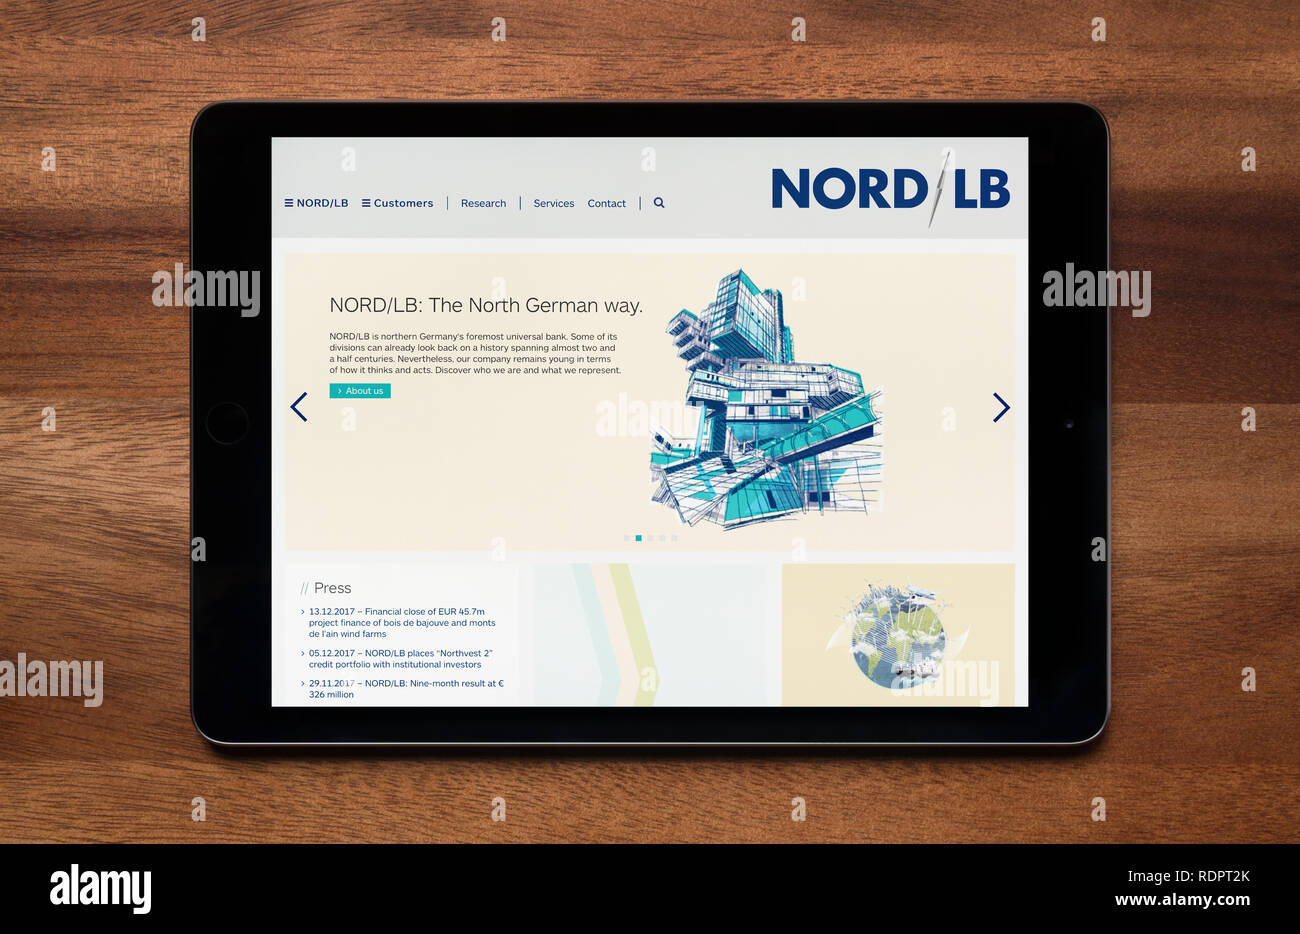 The website of Nord LB is seen on an iPad tablet, which is resting on a wooden table (Editorial use only). - Stock Image